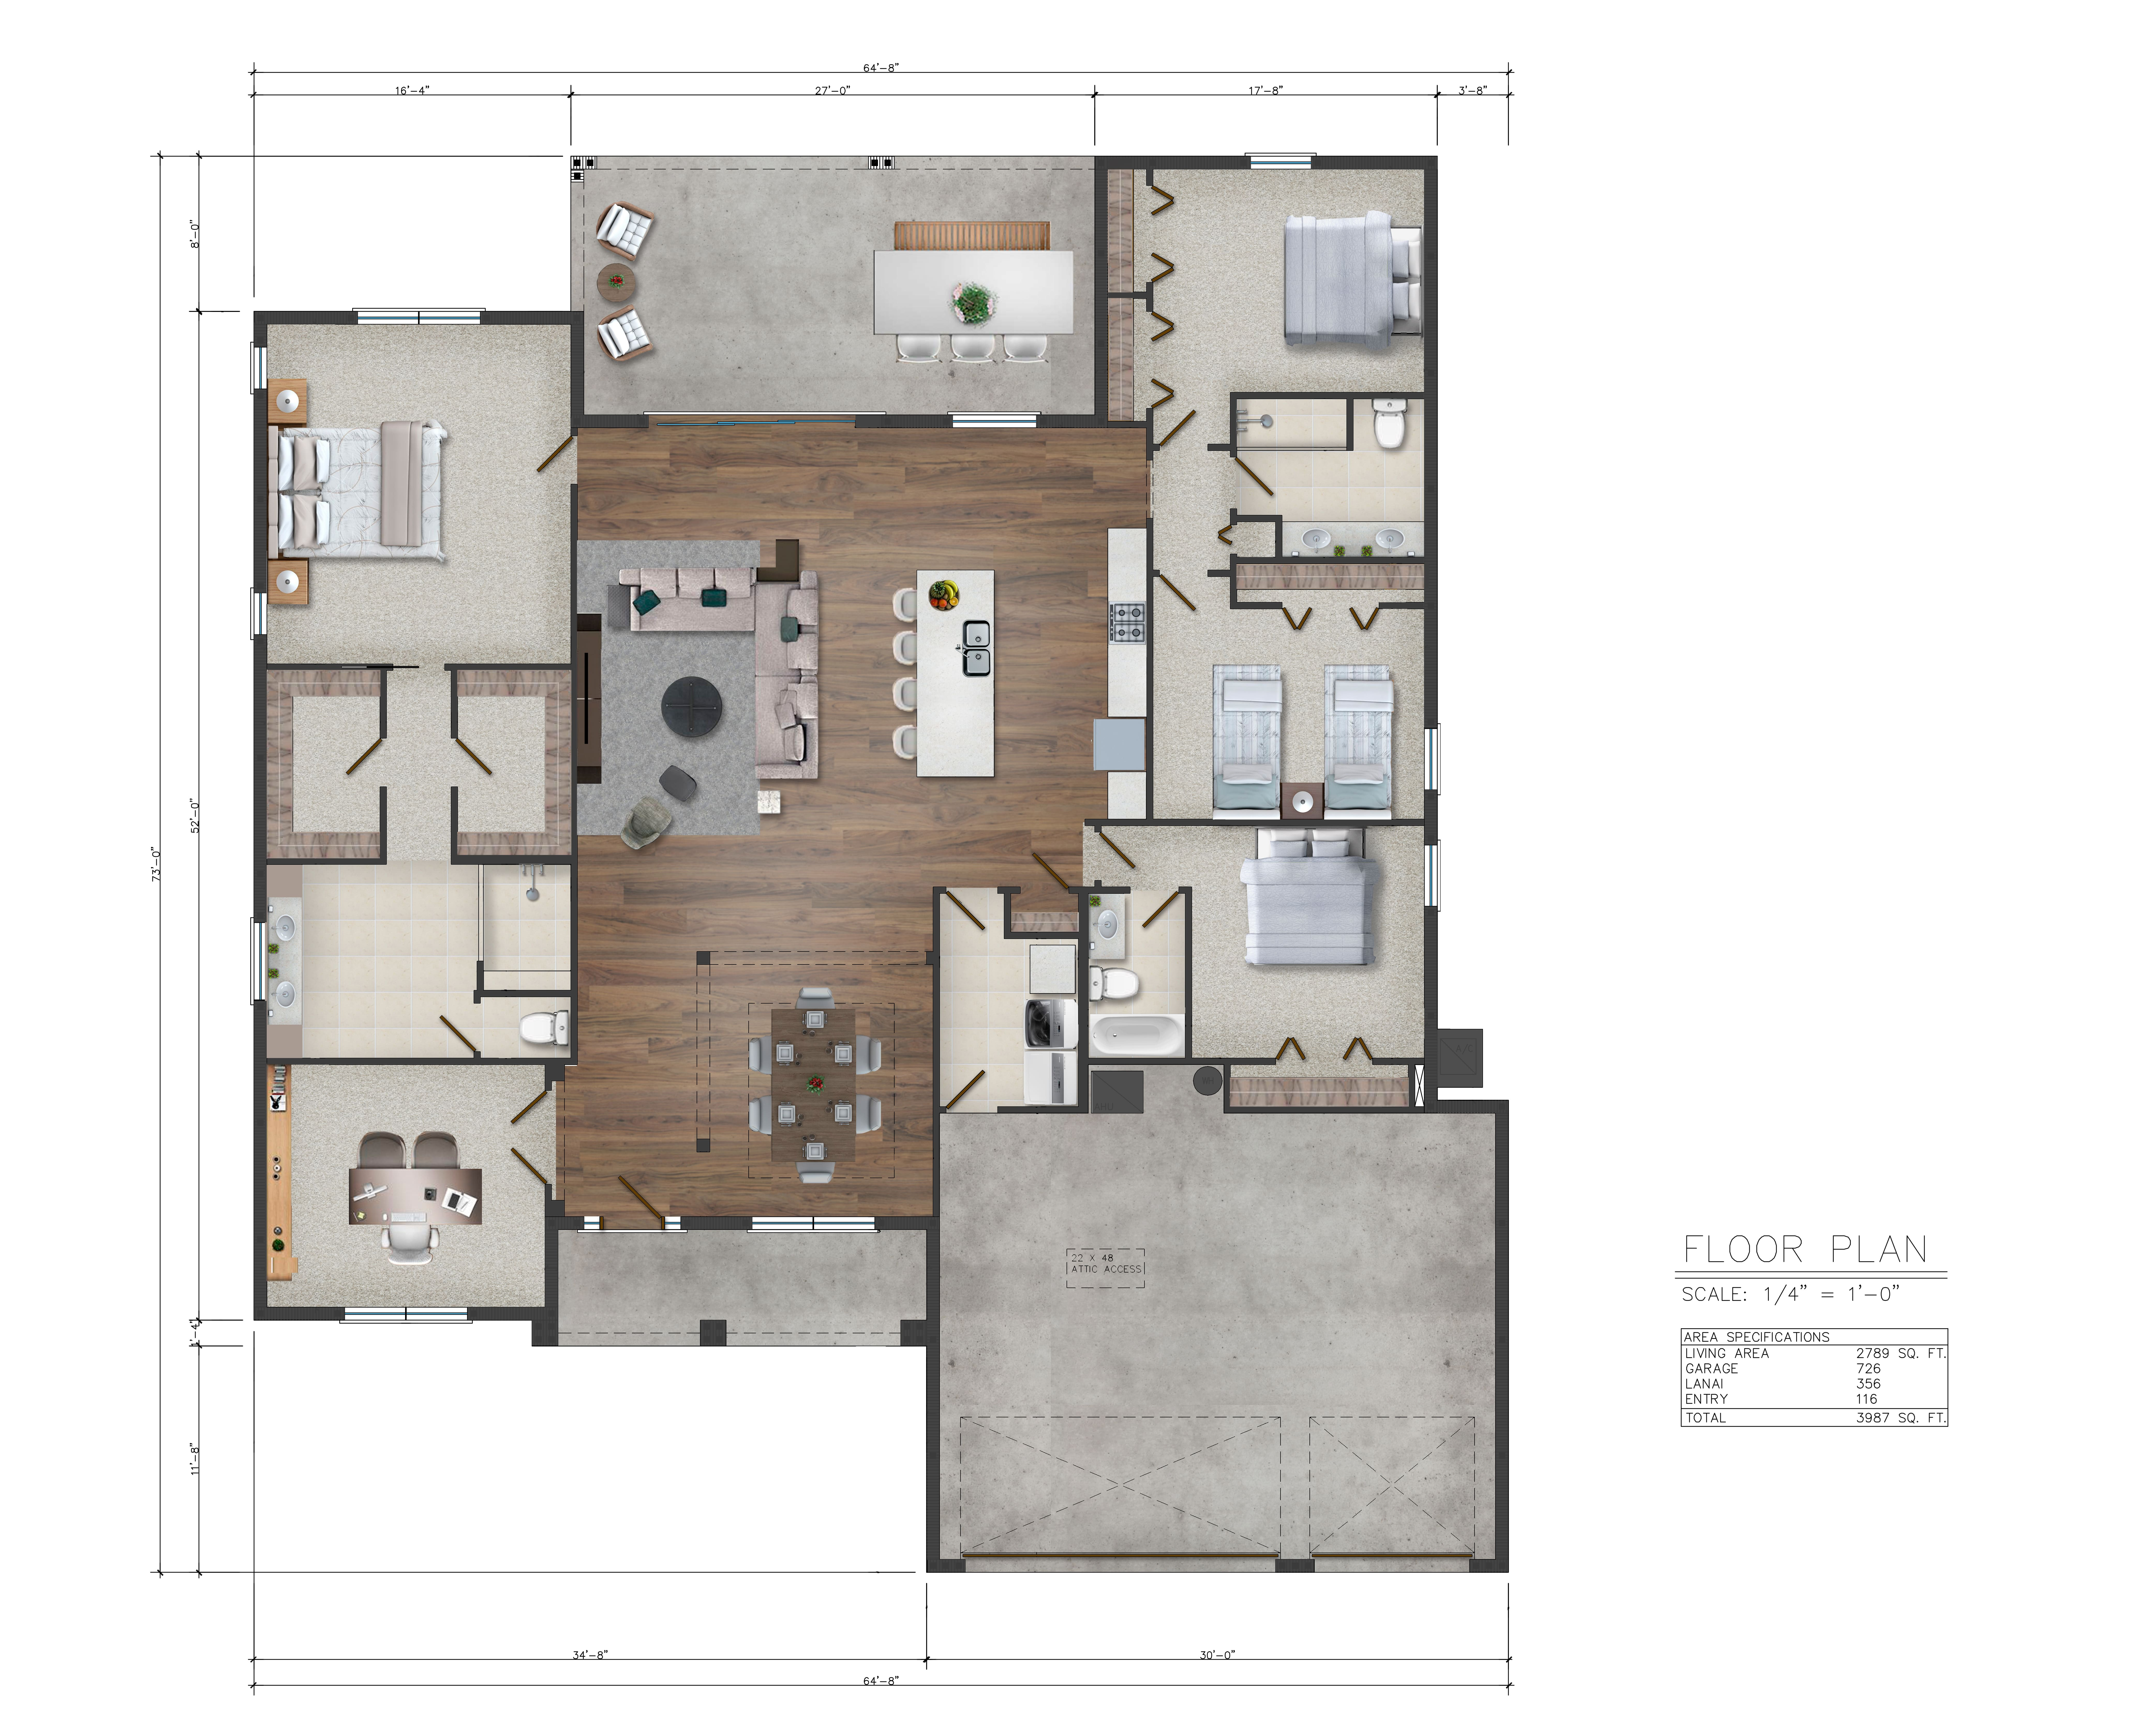 Draw A Architectural Floor Plan For Your Airbnb Listing By Dhanipalacios